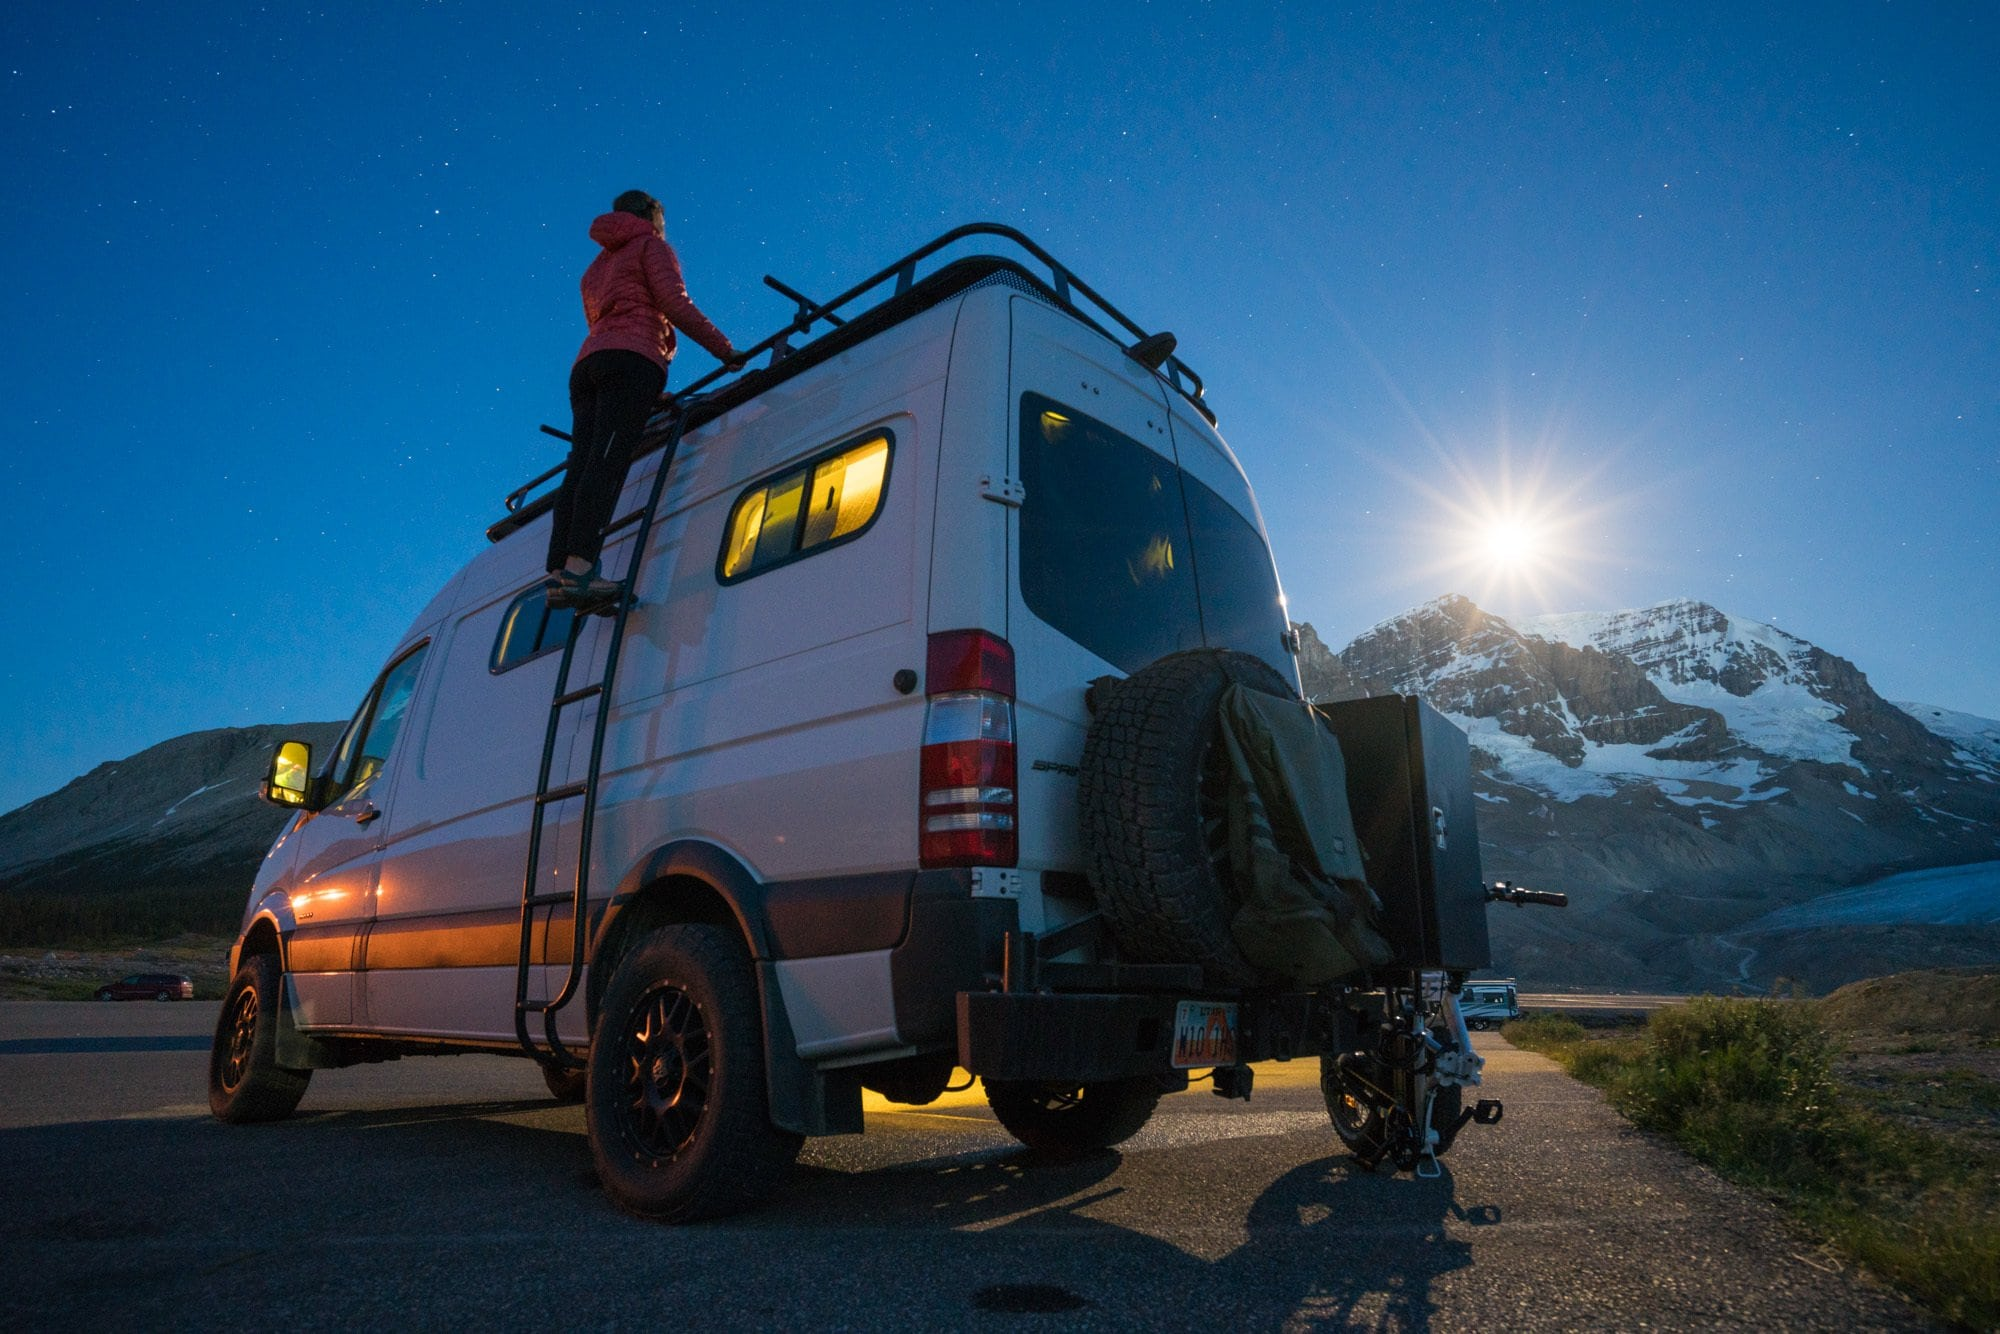 Planning a camping trip in the Canadian Rockies? Get the details on the best Banff, Jasper & Yoho campgrounds with information on reservations, overflow camping, and the most convenient places to stay.